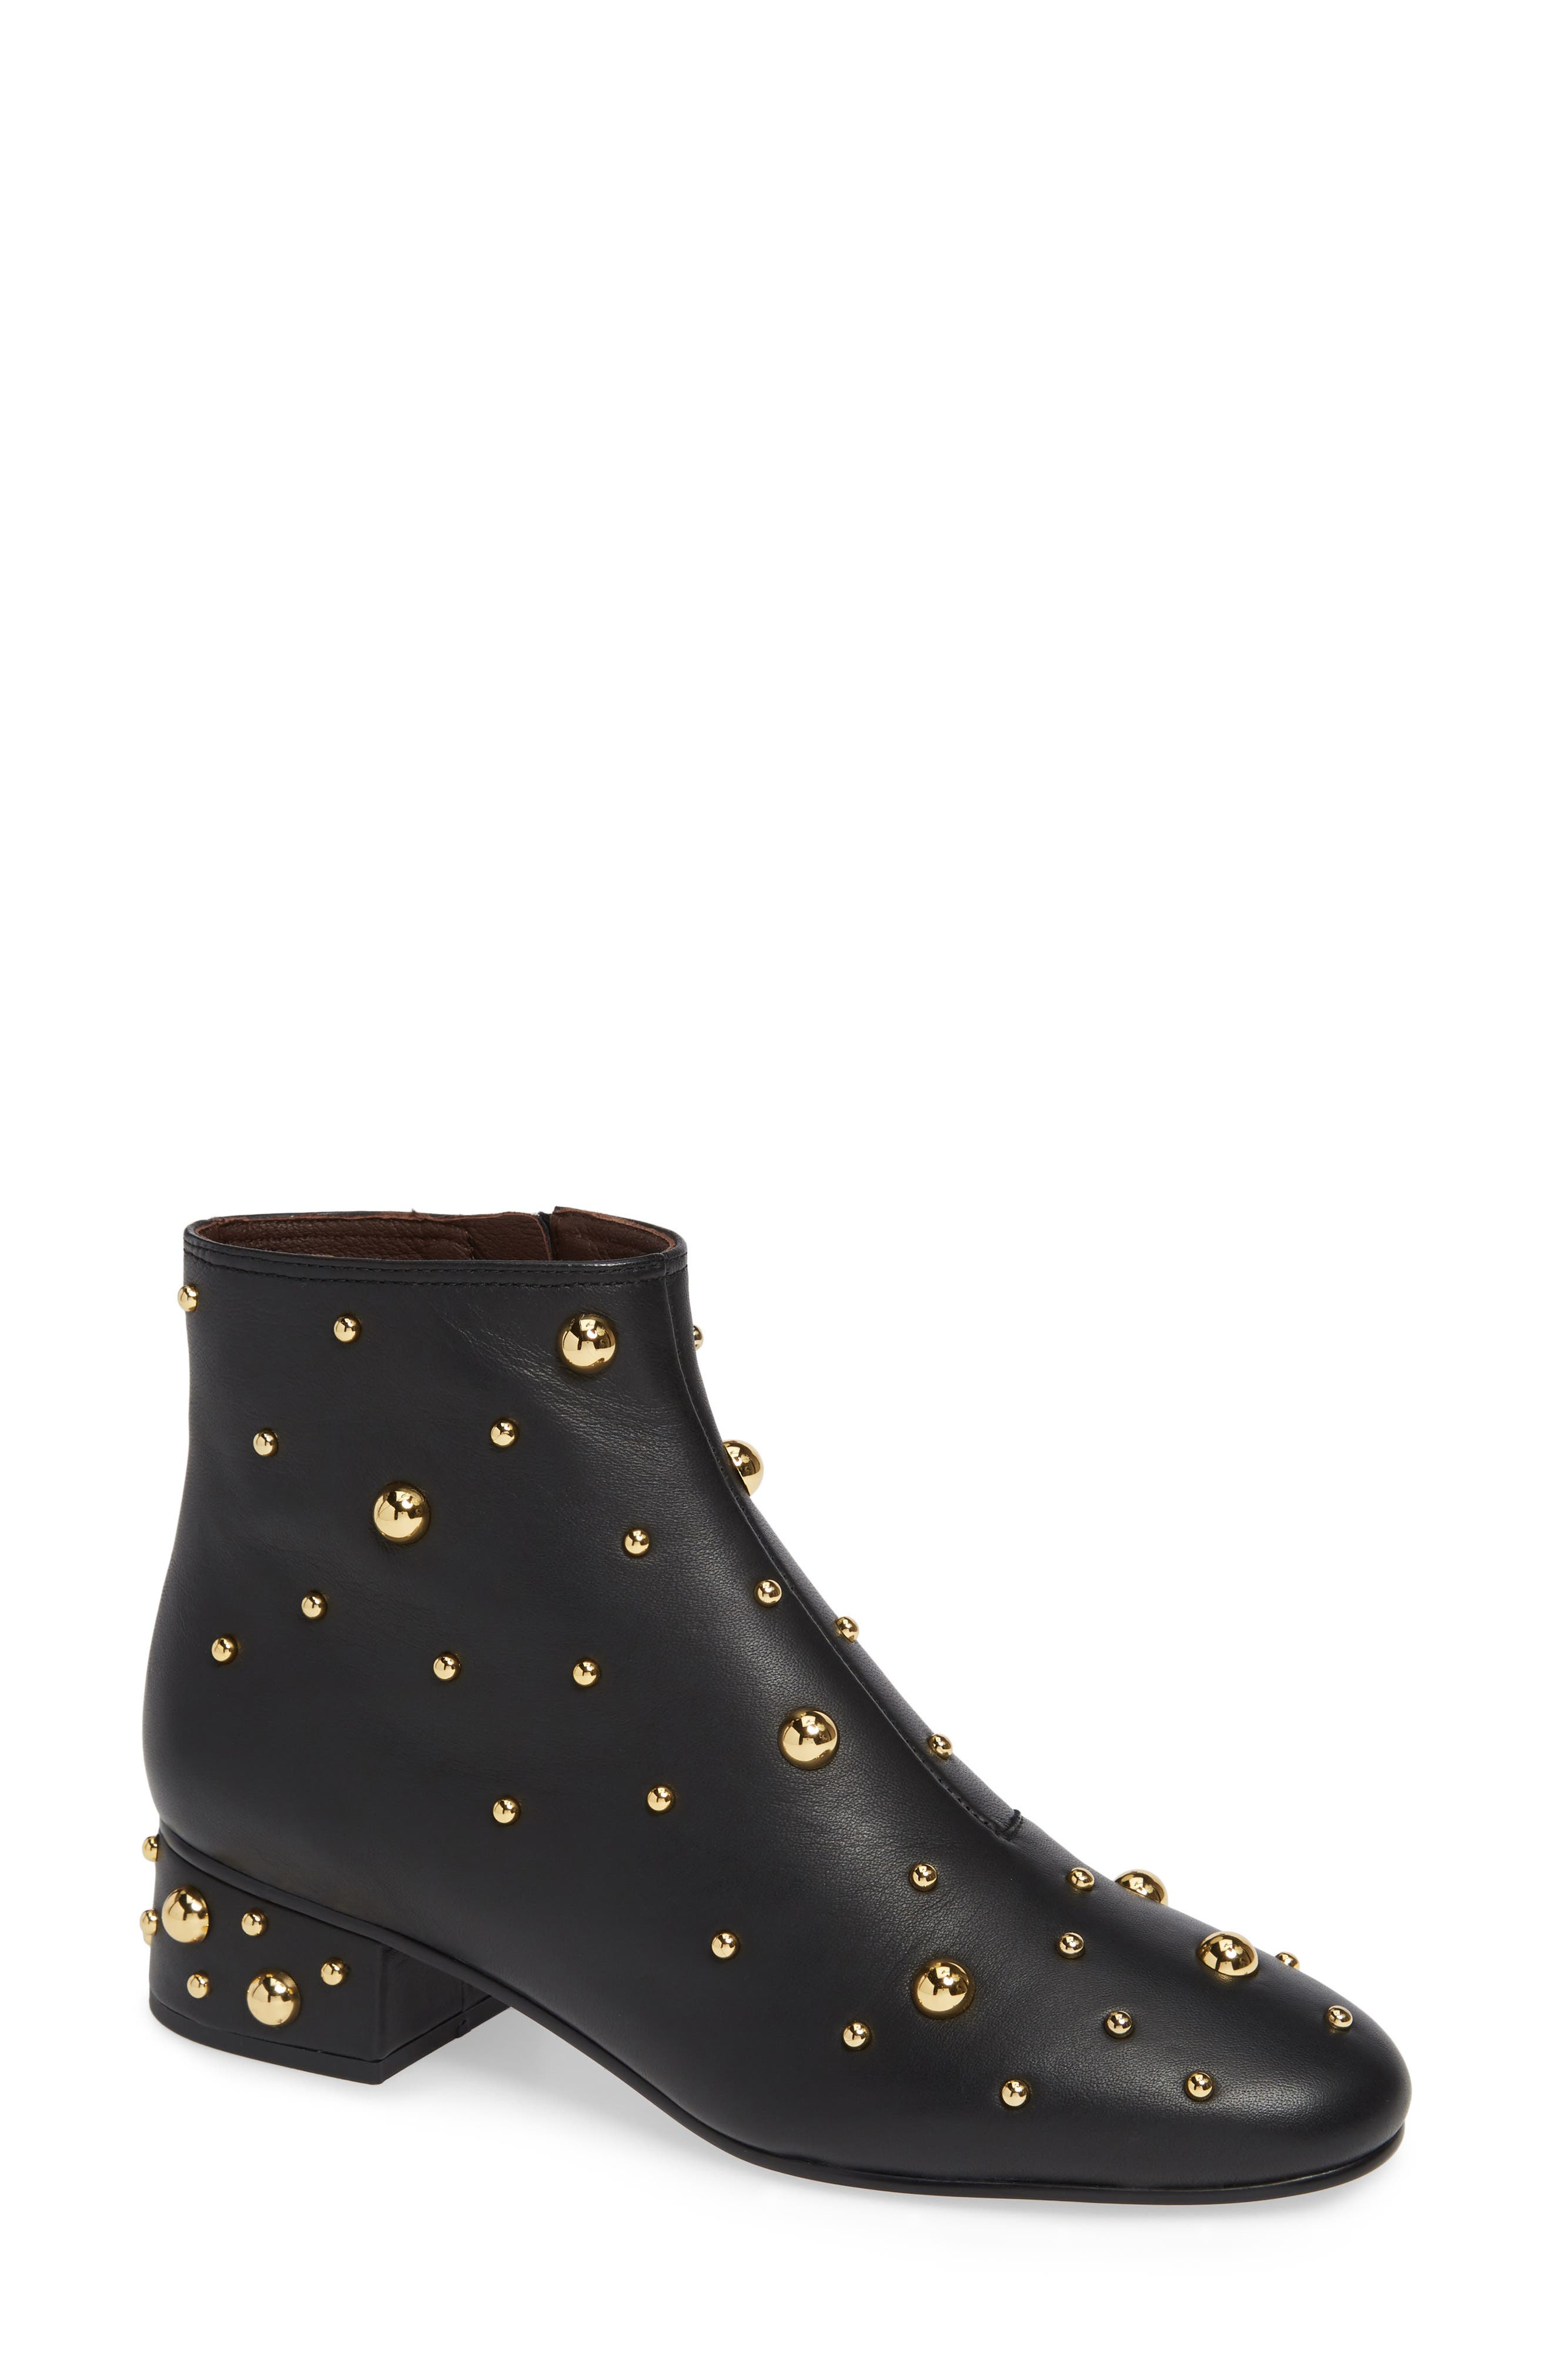 SEE BY CHLOÉ,                             Abby Studded Bootie,                             Main thumbnail 1, color,                             001